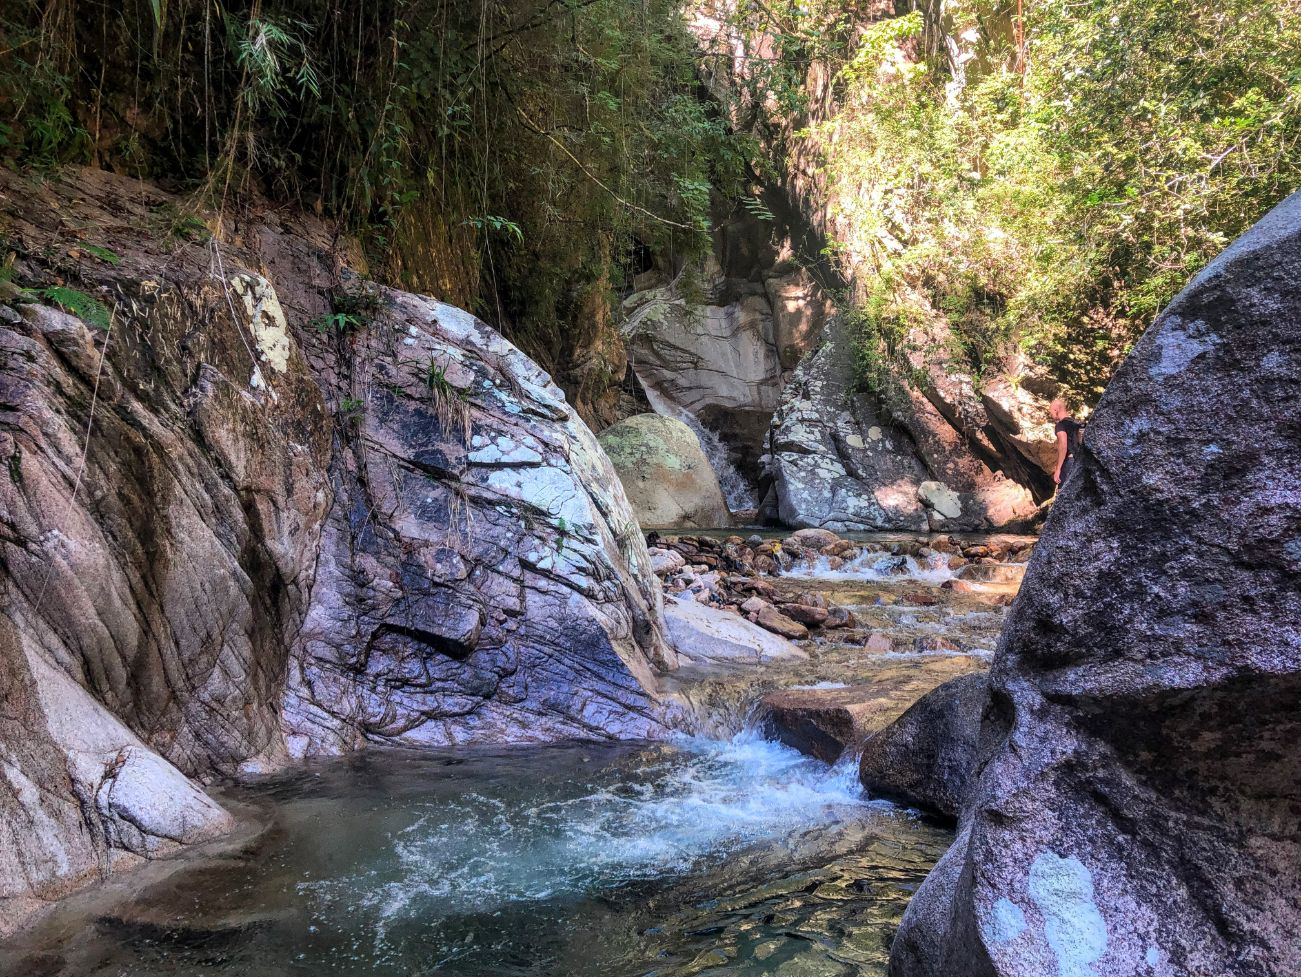 Large boulders and river swimming hole at the Nogalito Waterfall